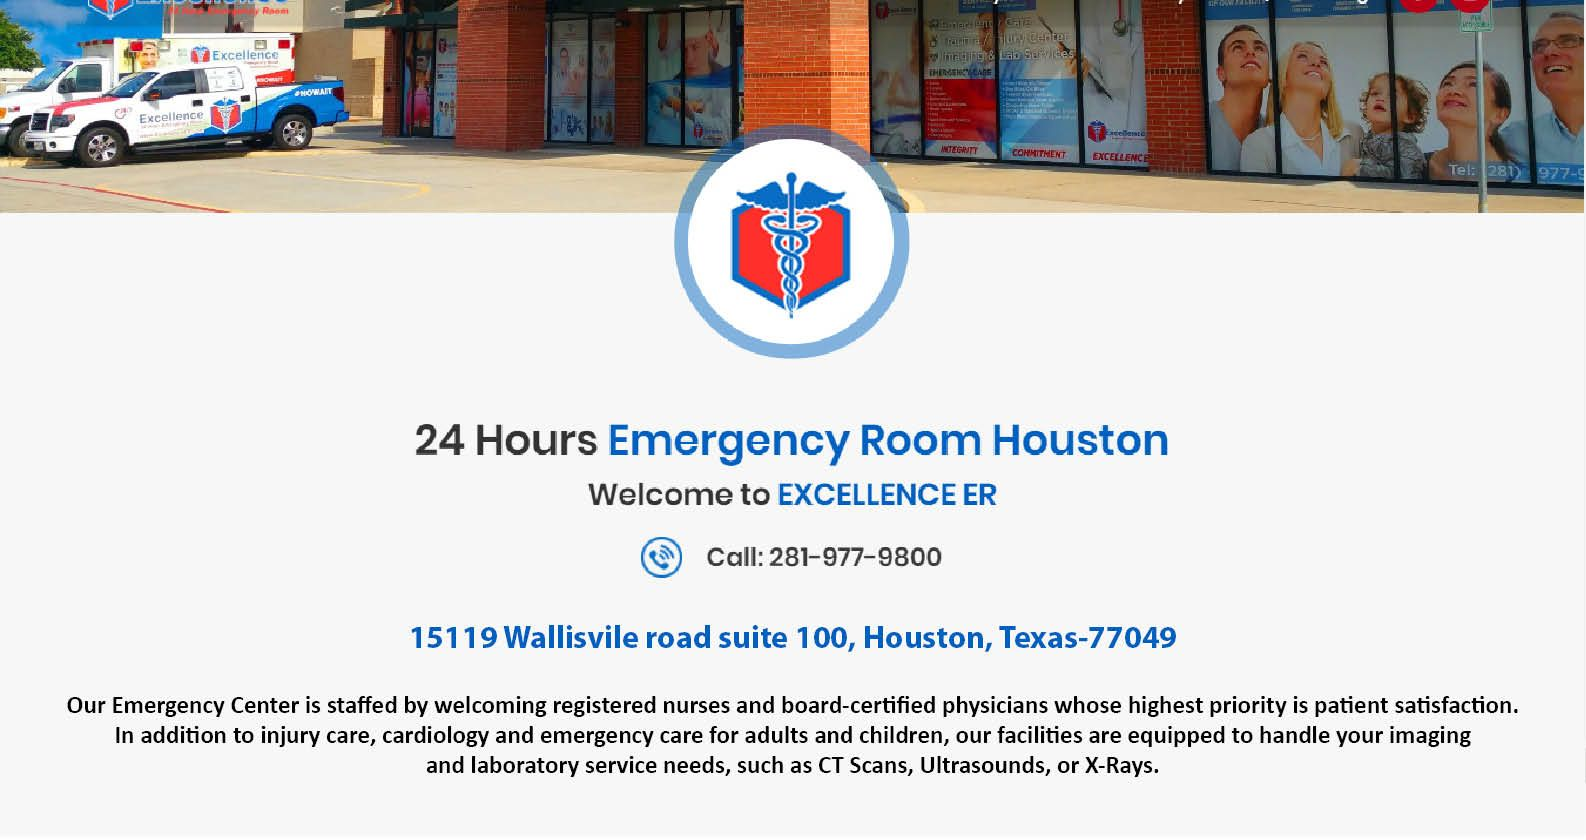 Excellence ER Our Emergency Center is staffed by